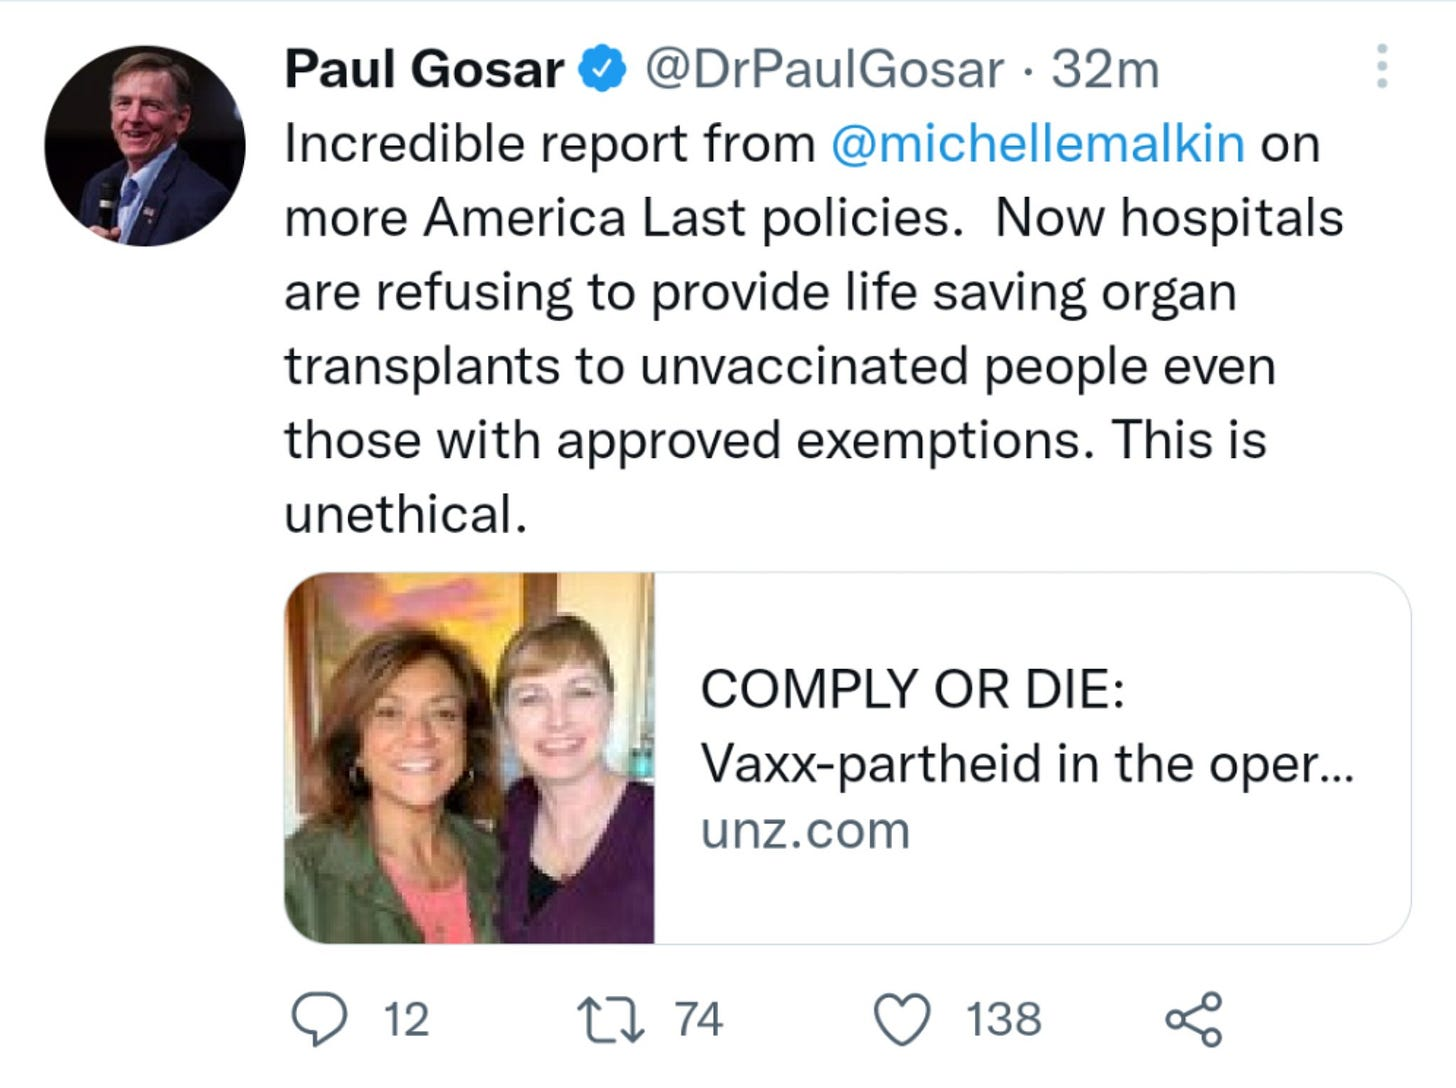 """Screenshot of Paul Gosar tweet that reads: """"Incredible report from @michellemalkin  on more America Last policies.  Now hospitals are refusing to provide life saving organ transplants to unvaccinated people even those with approved exemptions. This is unethical."""""""